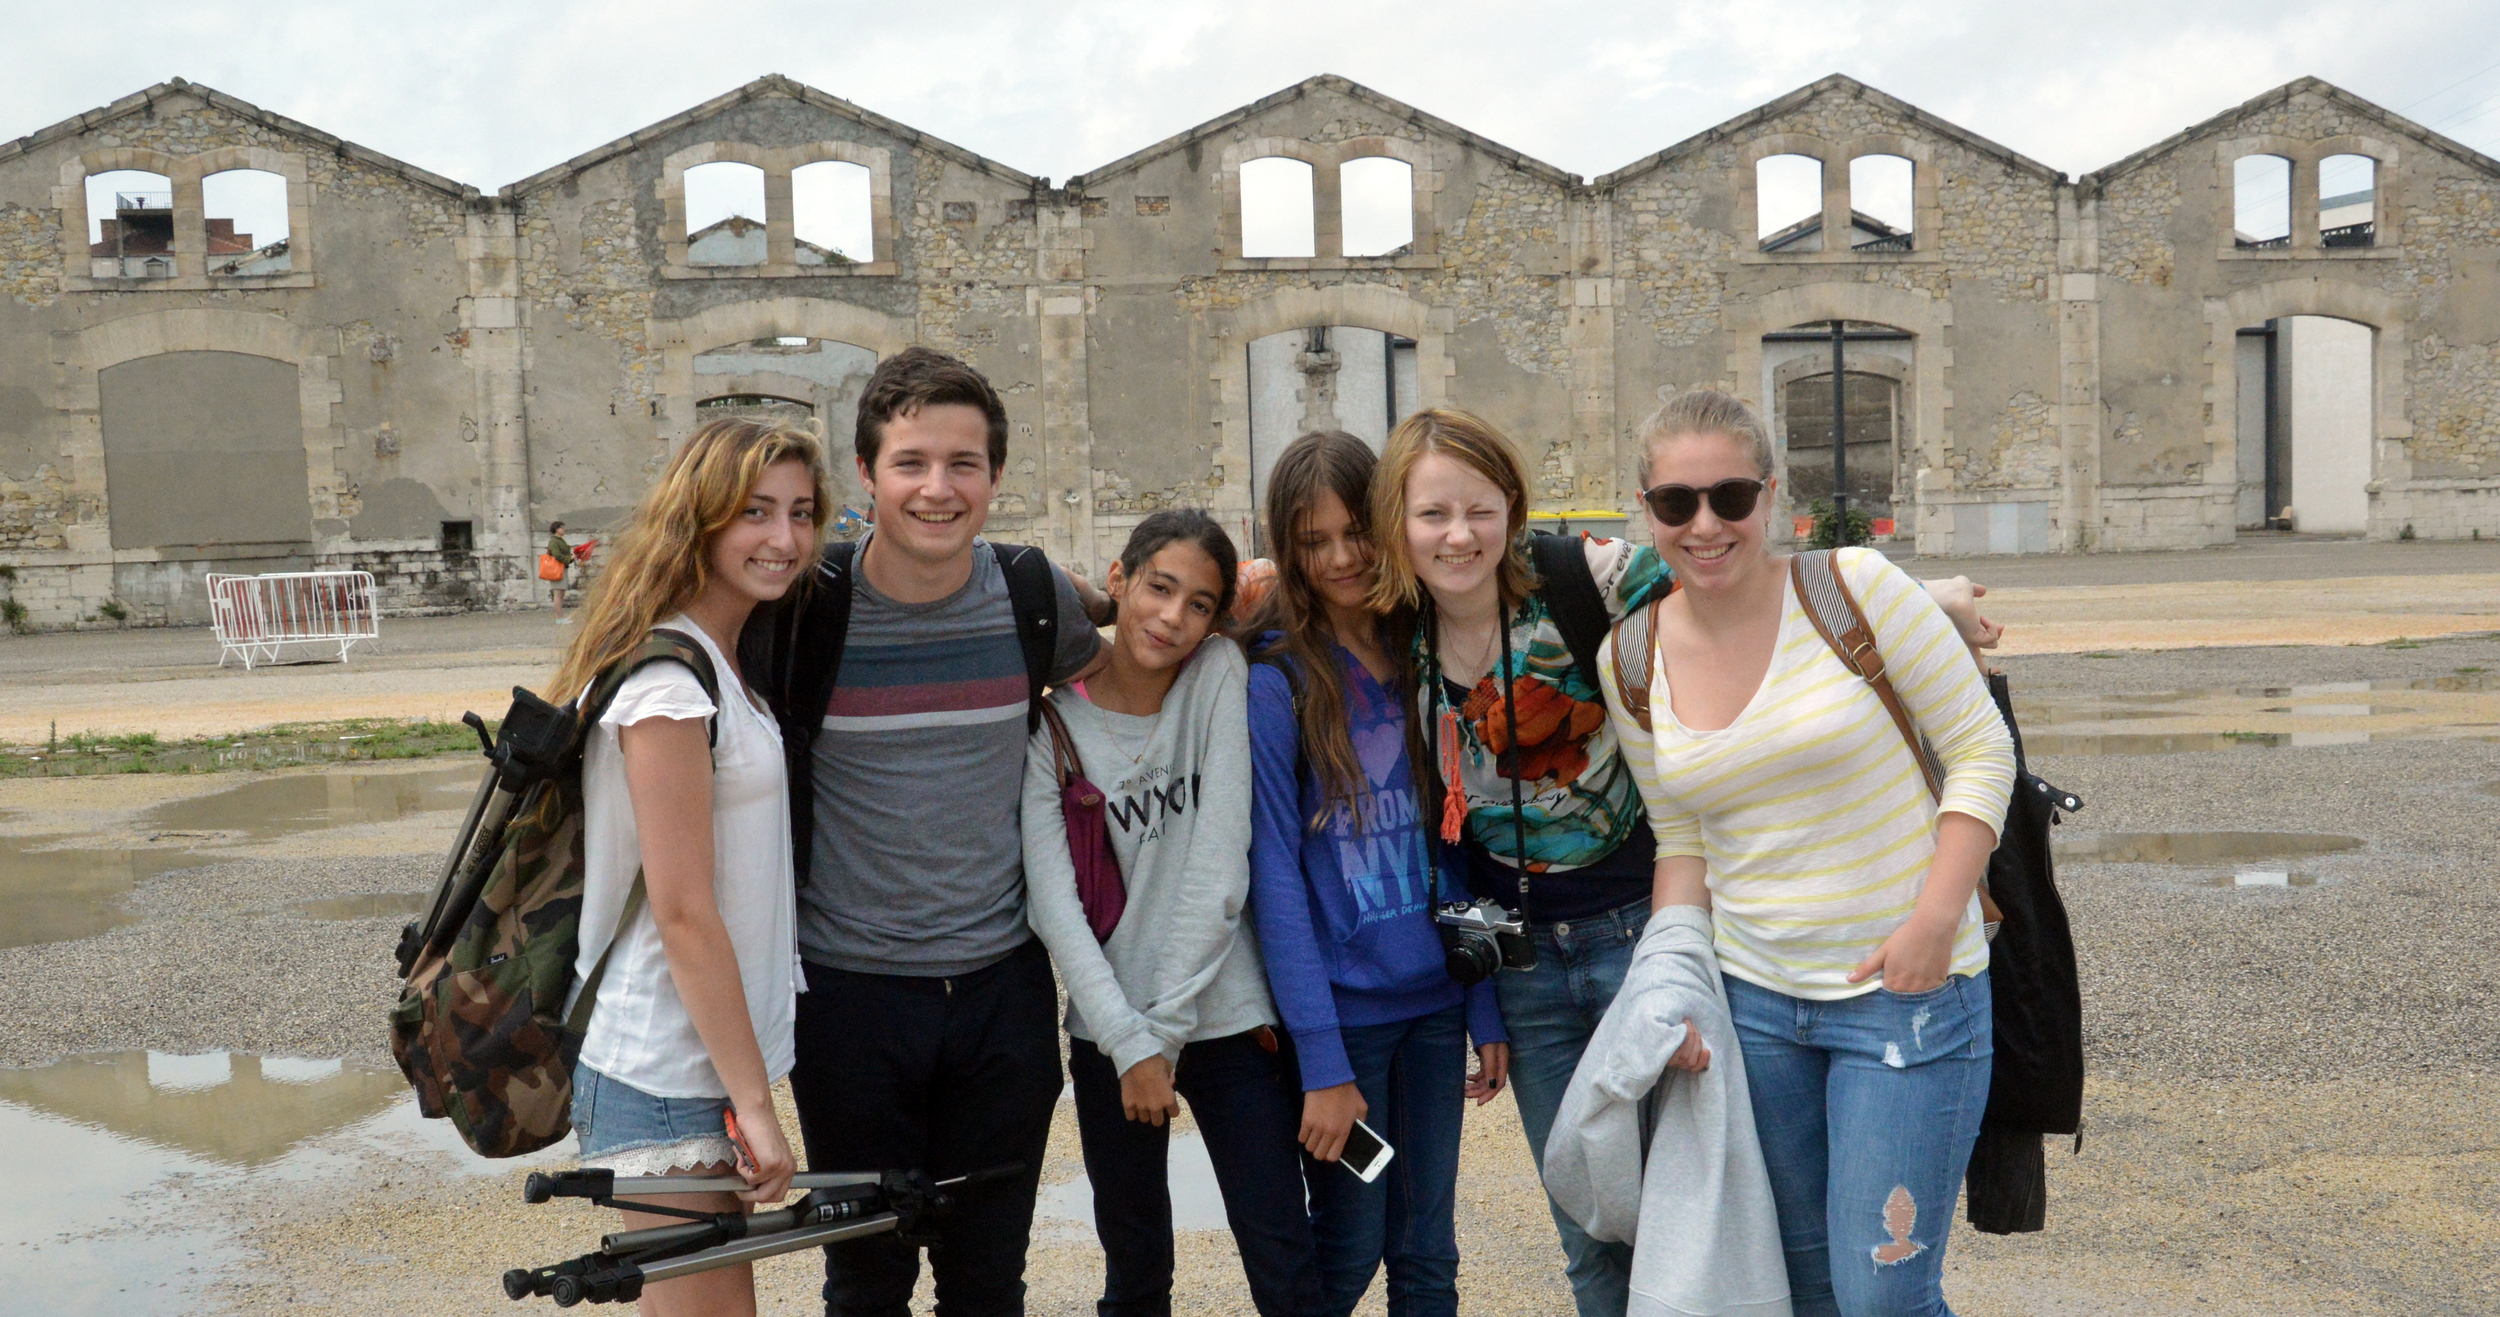 An excursion to Les Rencontres d'Arles summer photography festival